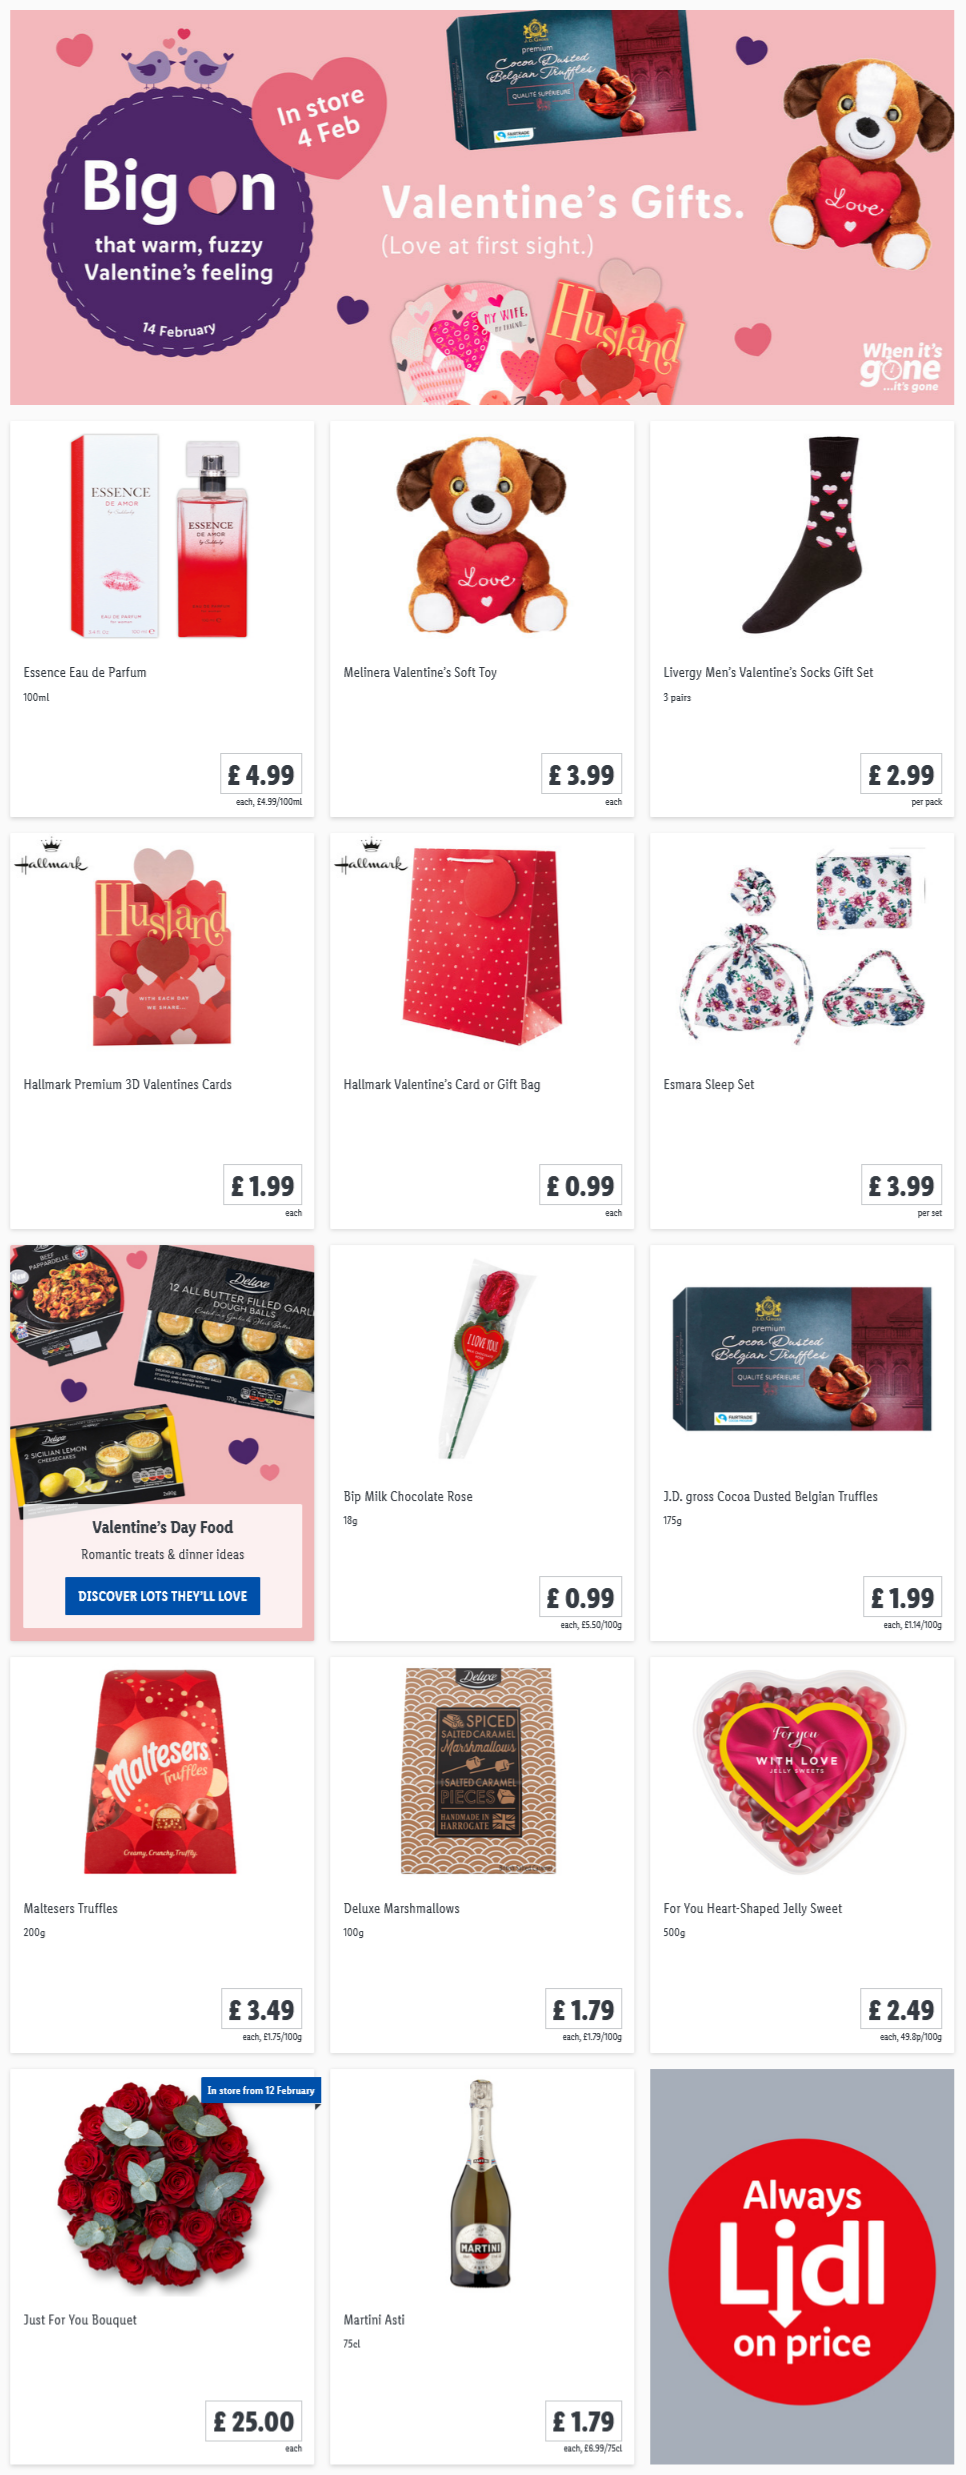 LiDL Valentine's Gifts From 4th February 2021 LIDL Offers this Thursday